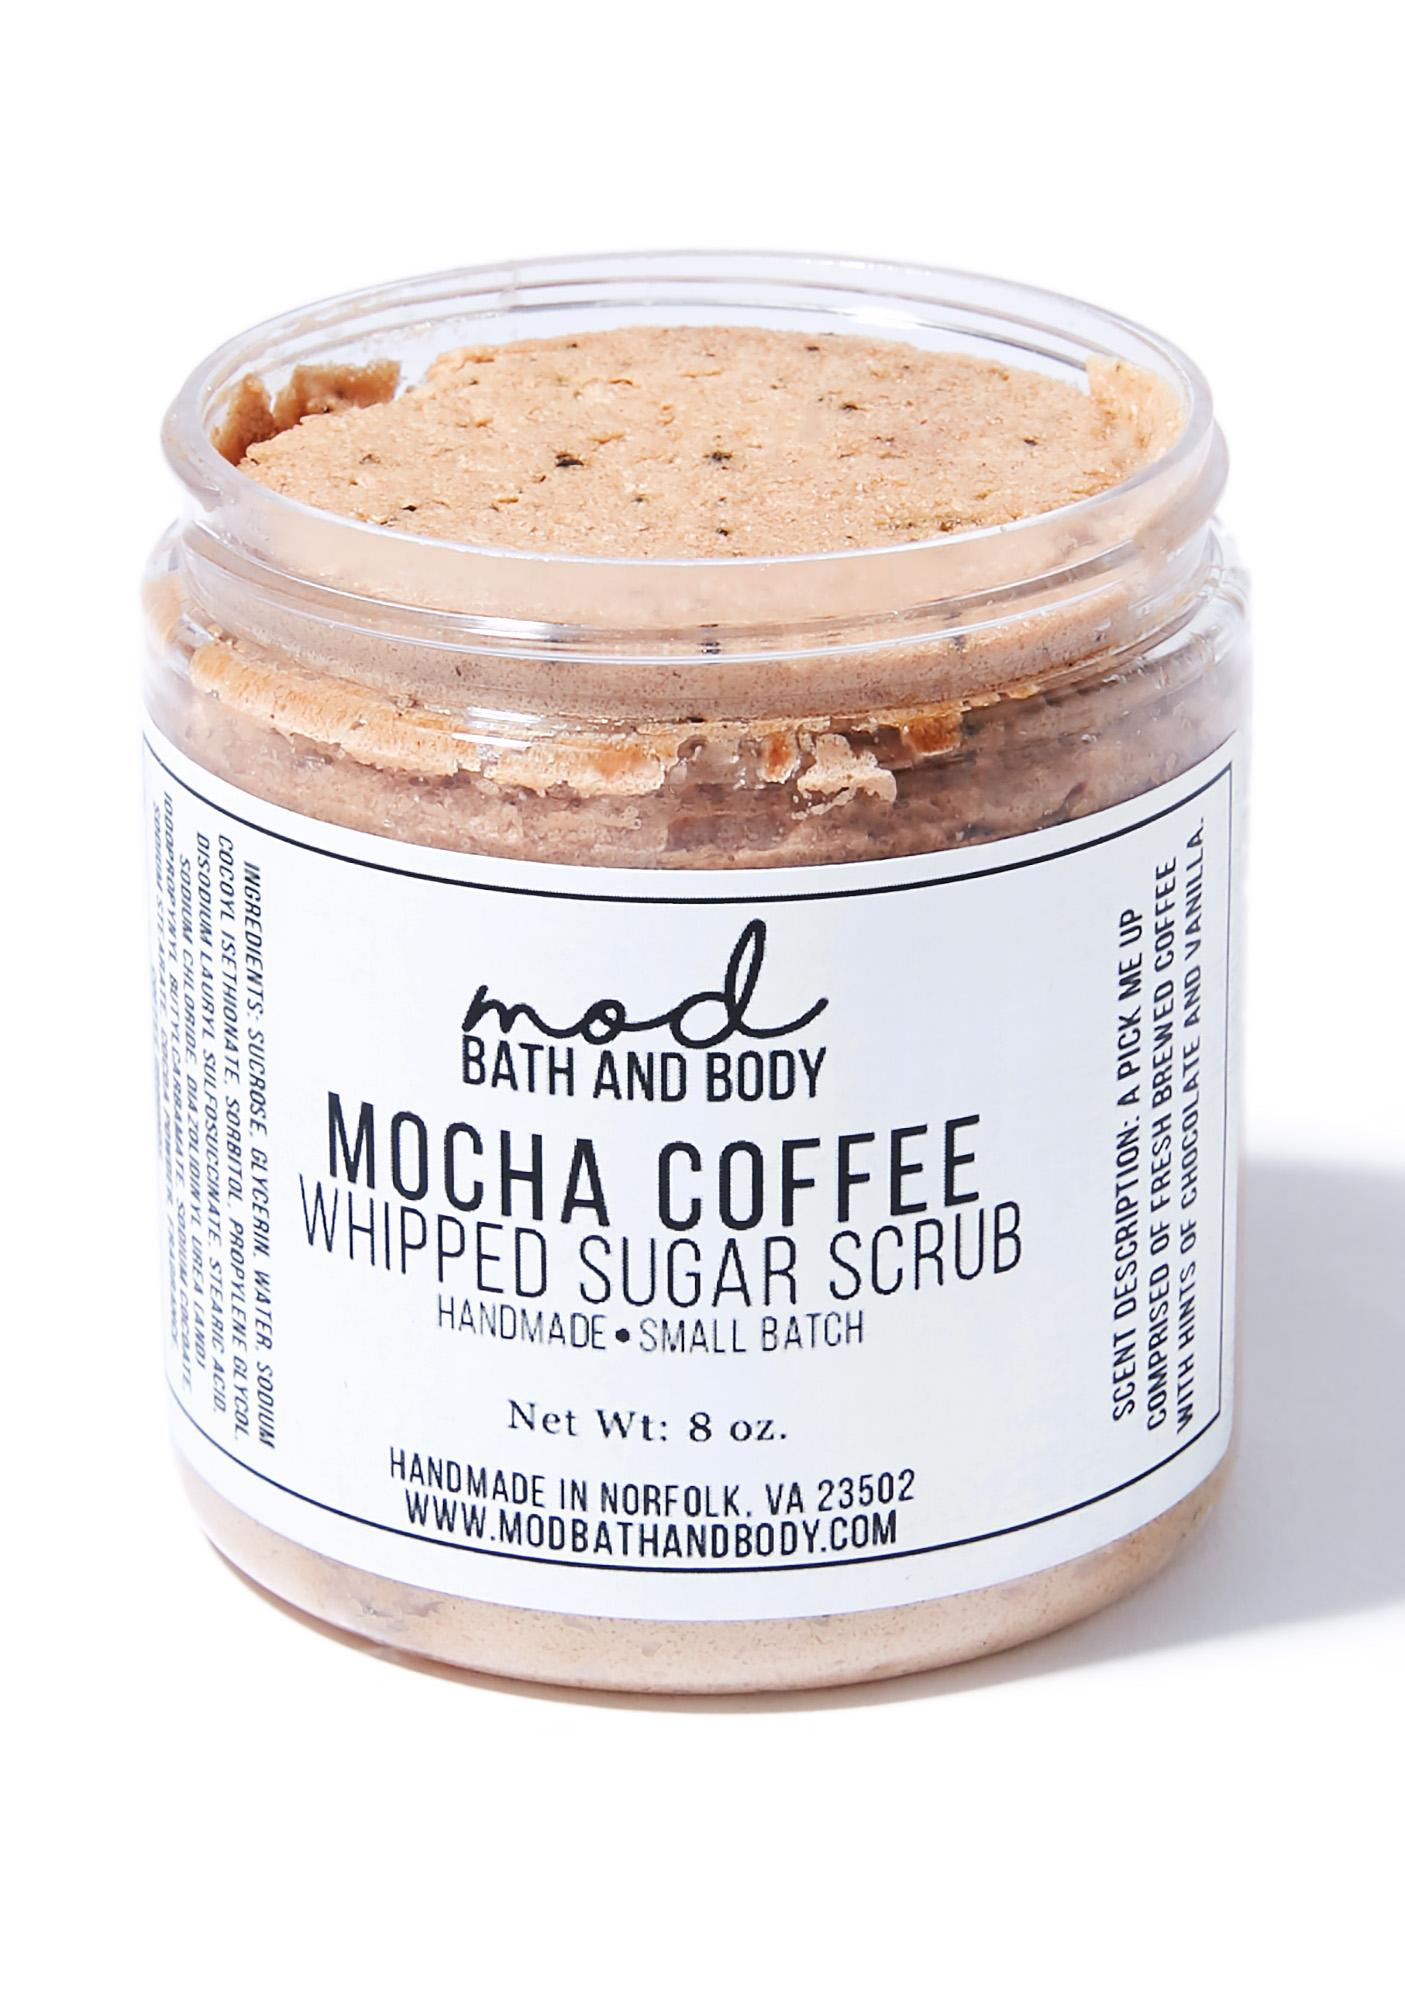 Mod Bath and Body Mocha Coffee Whipped Sugar Scrub